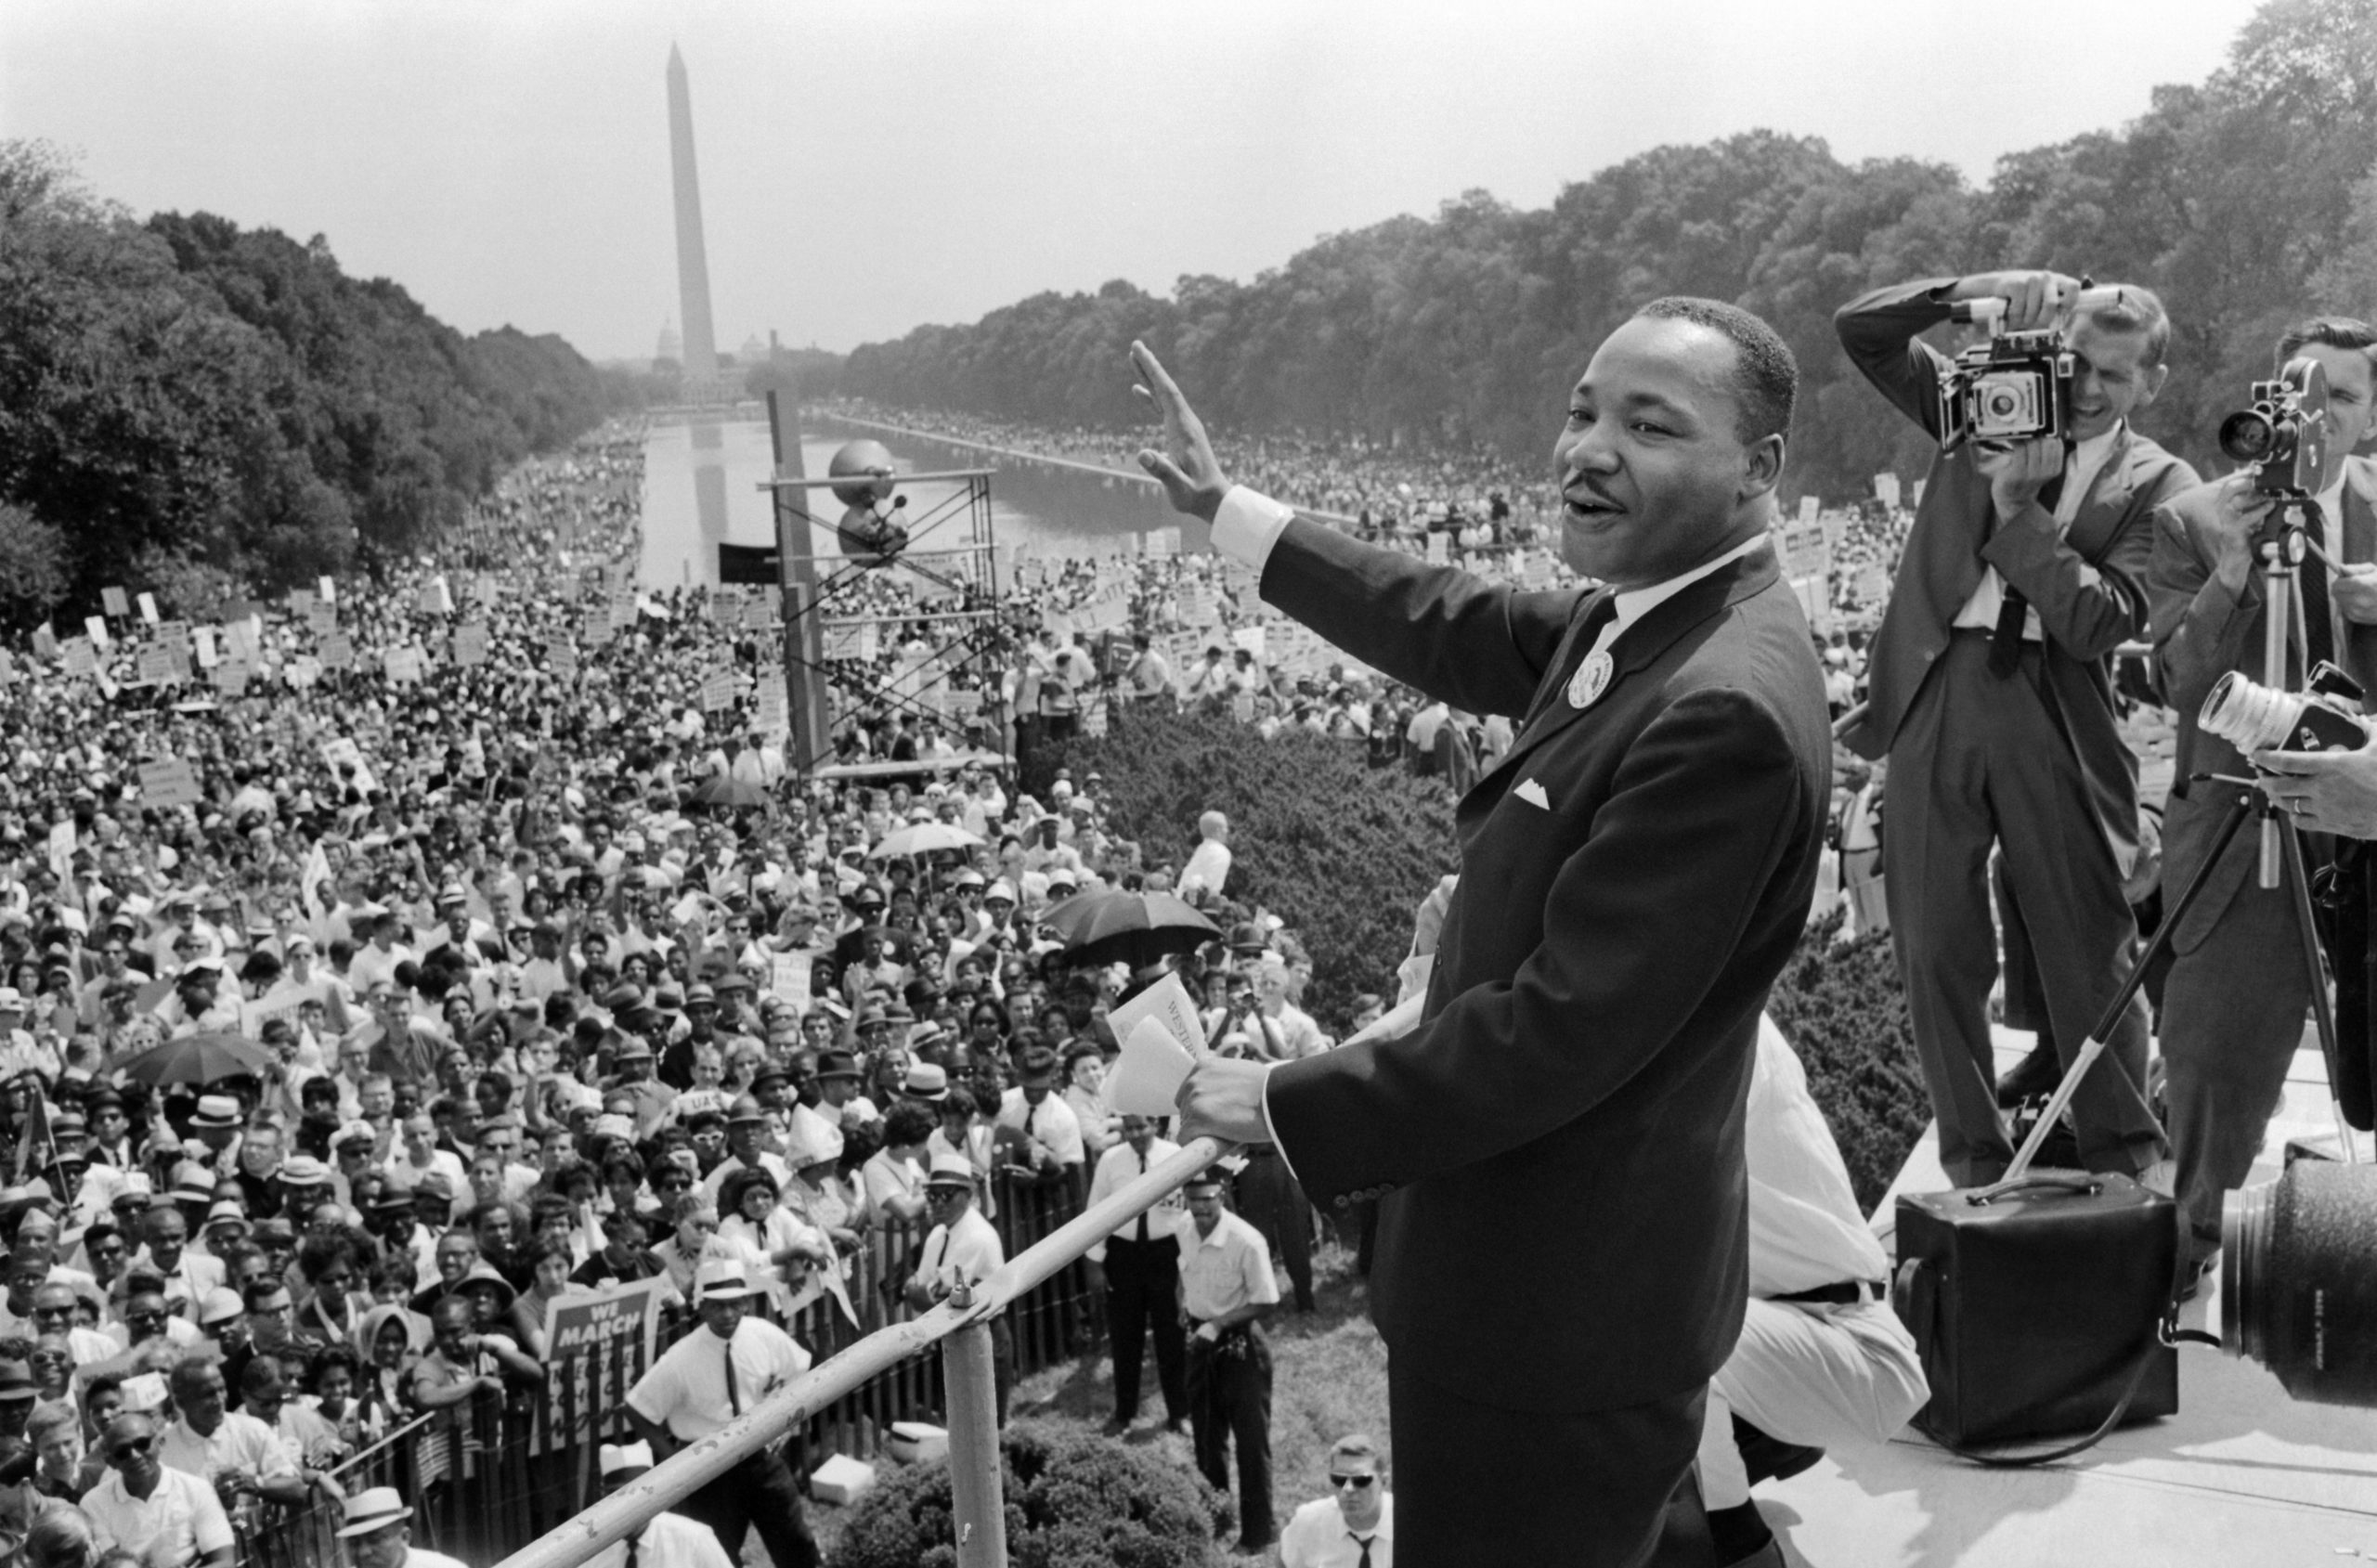 """The civil rights leader Martin Luther King (C) waves to supporters 28 August 1963 on the Mall in Washington DC (Washington Monument in background) during the """"March on Washington"""".( -/AFP via Getty Images)"""